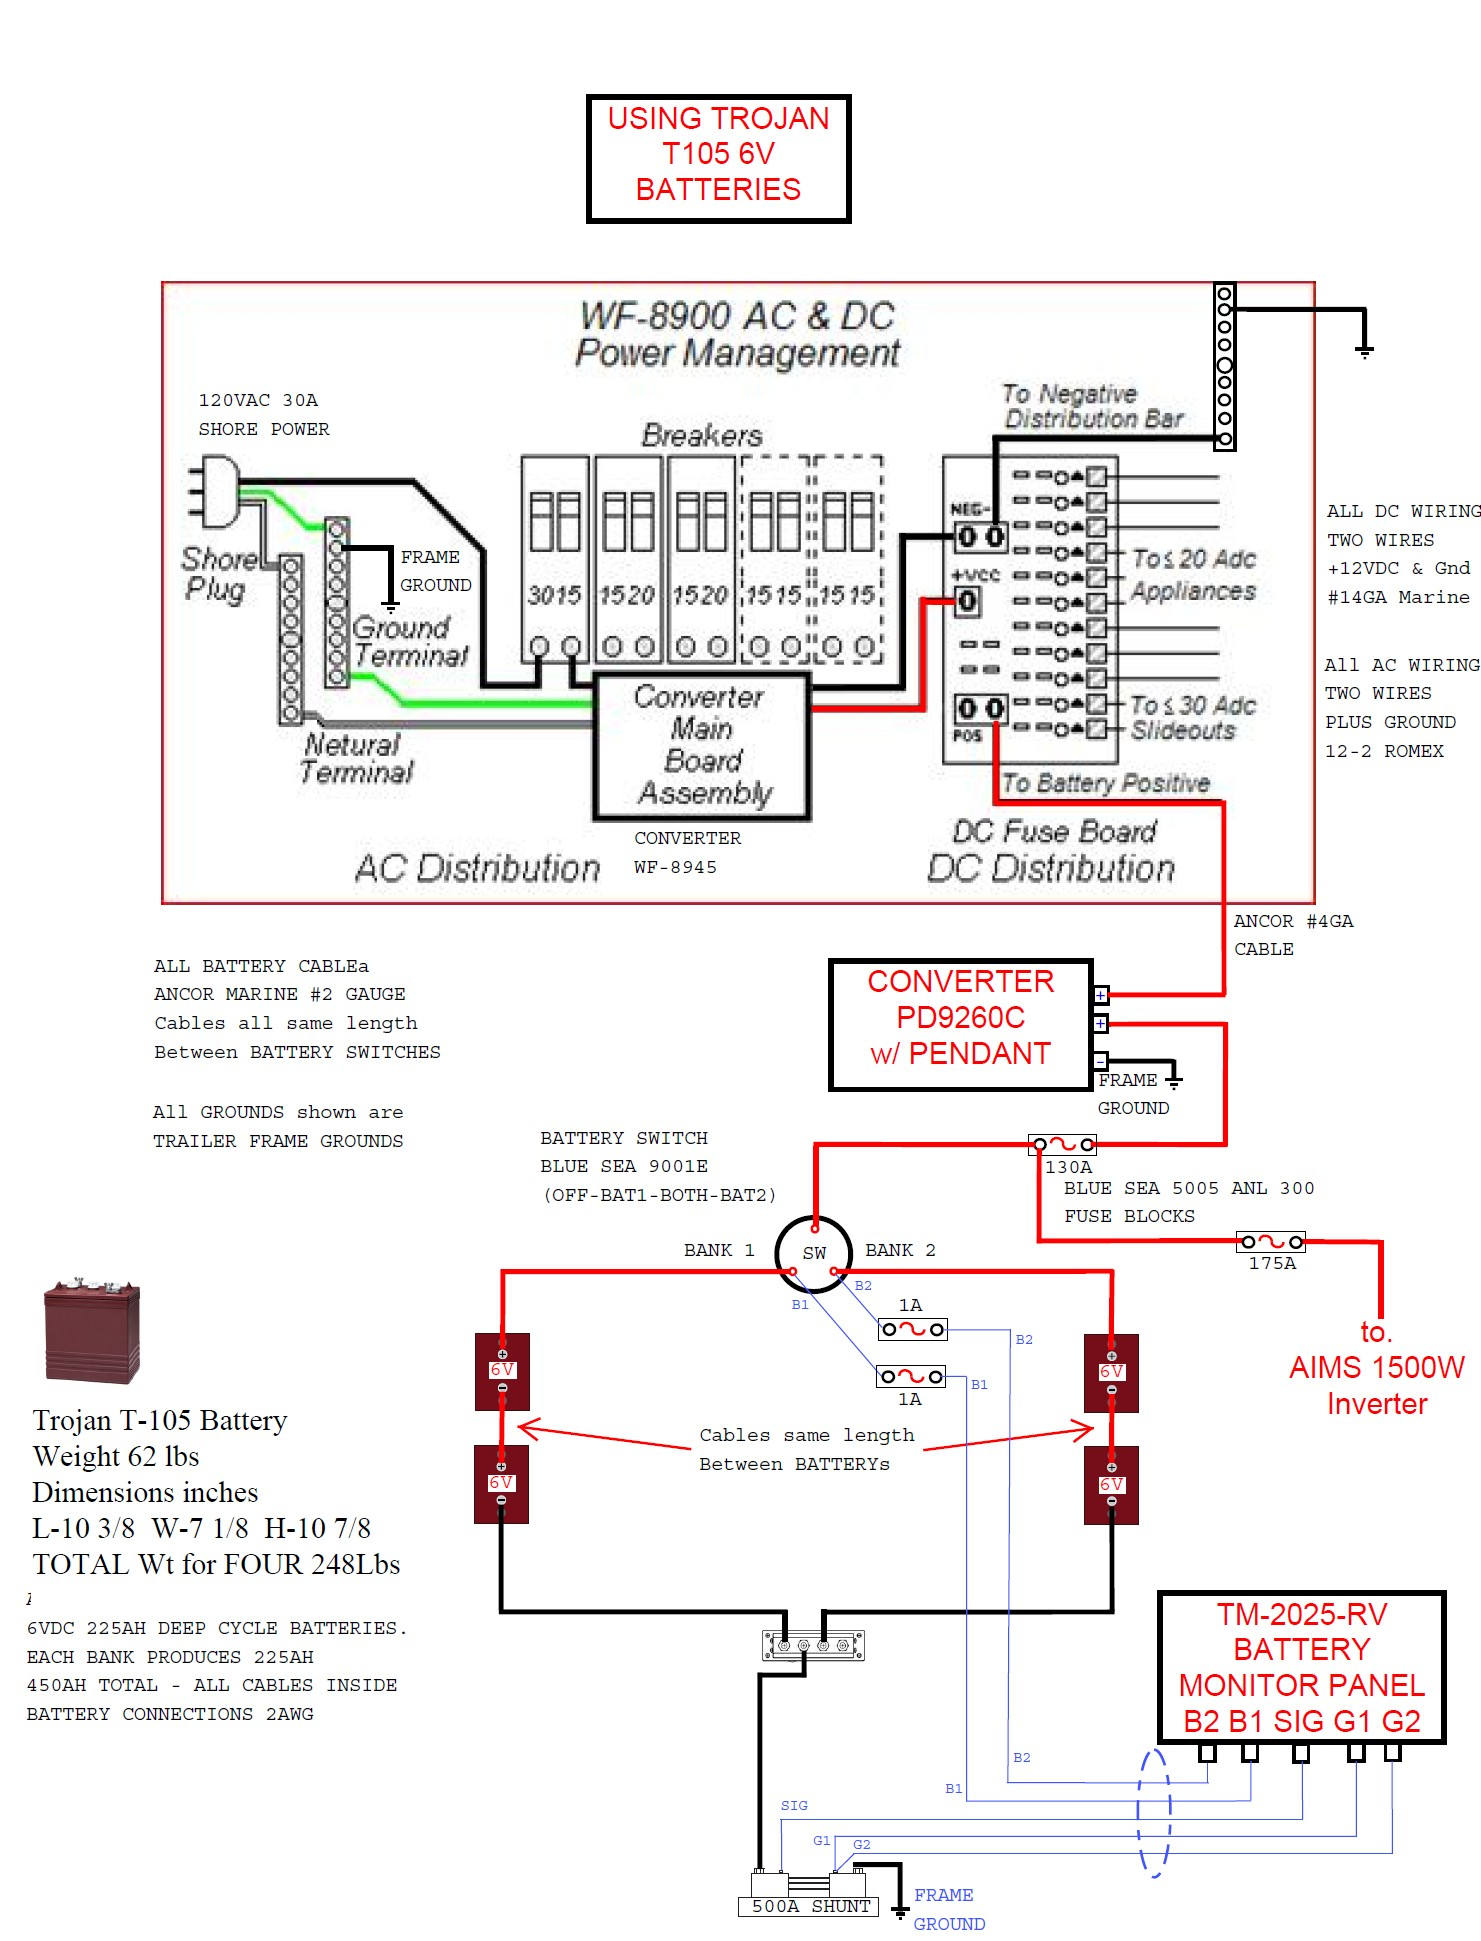 Jayco wiring schematic on